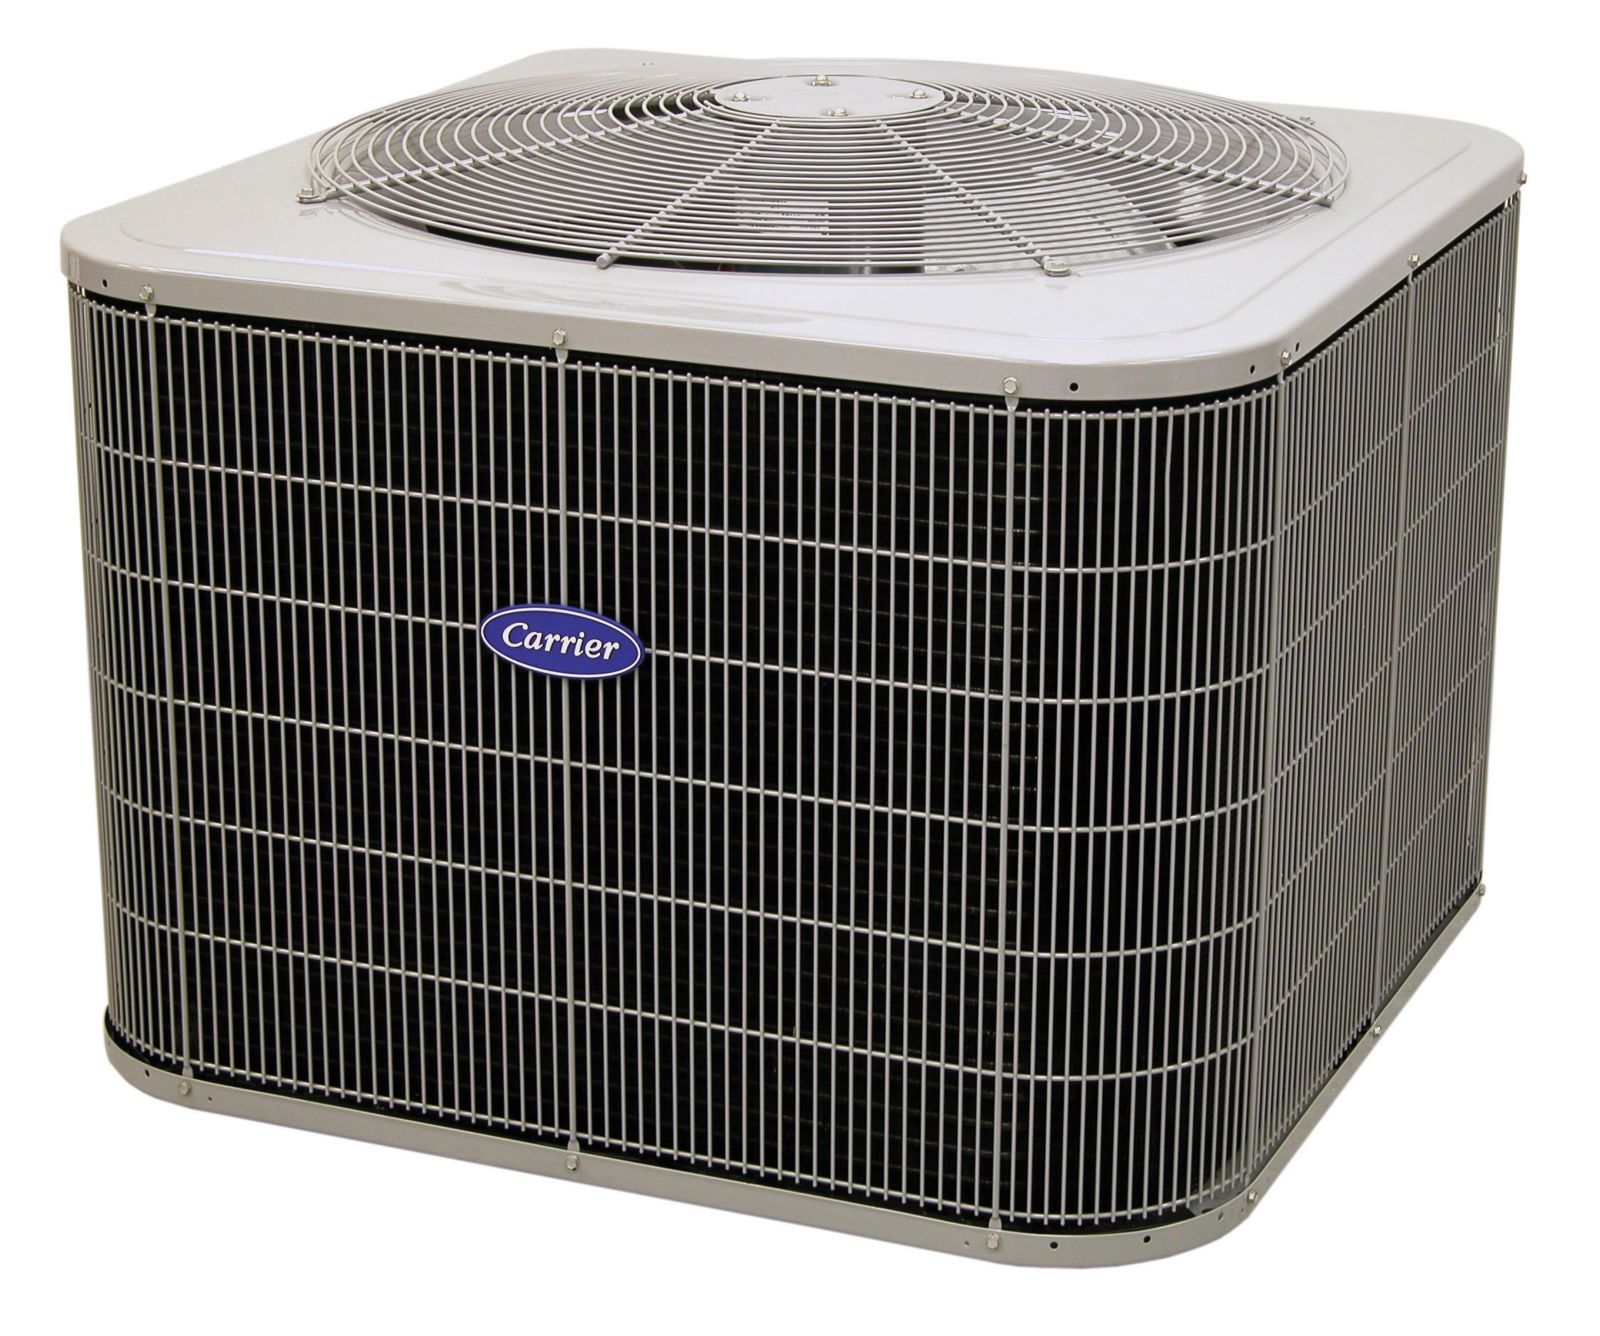 Carrier® Comfort™ - 3 Ton 14 SEER Residential Air Conditioner